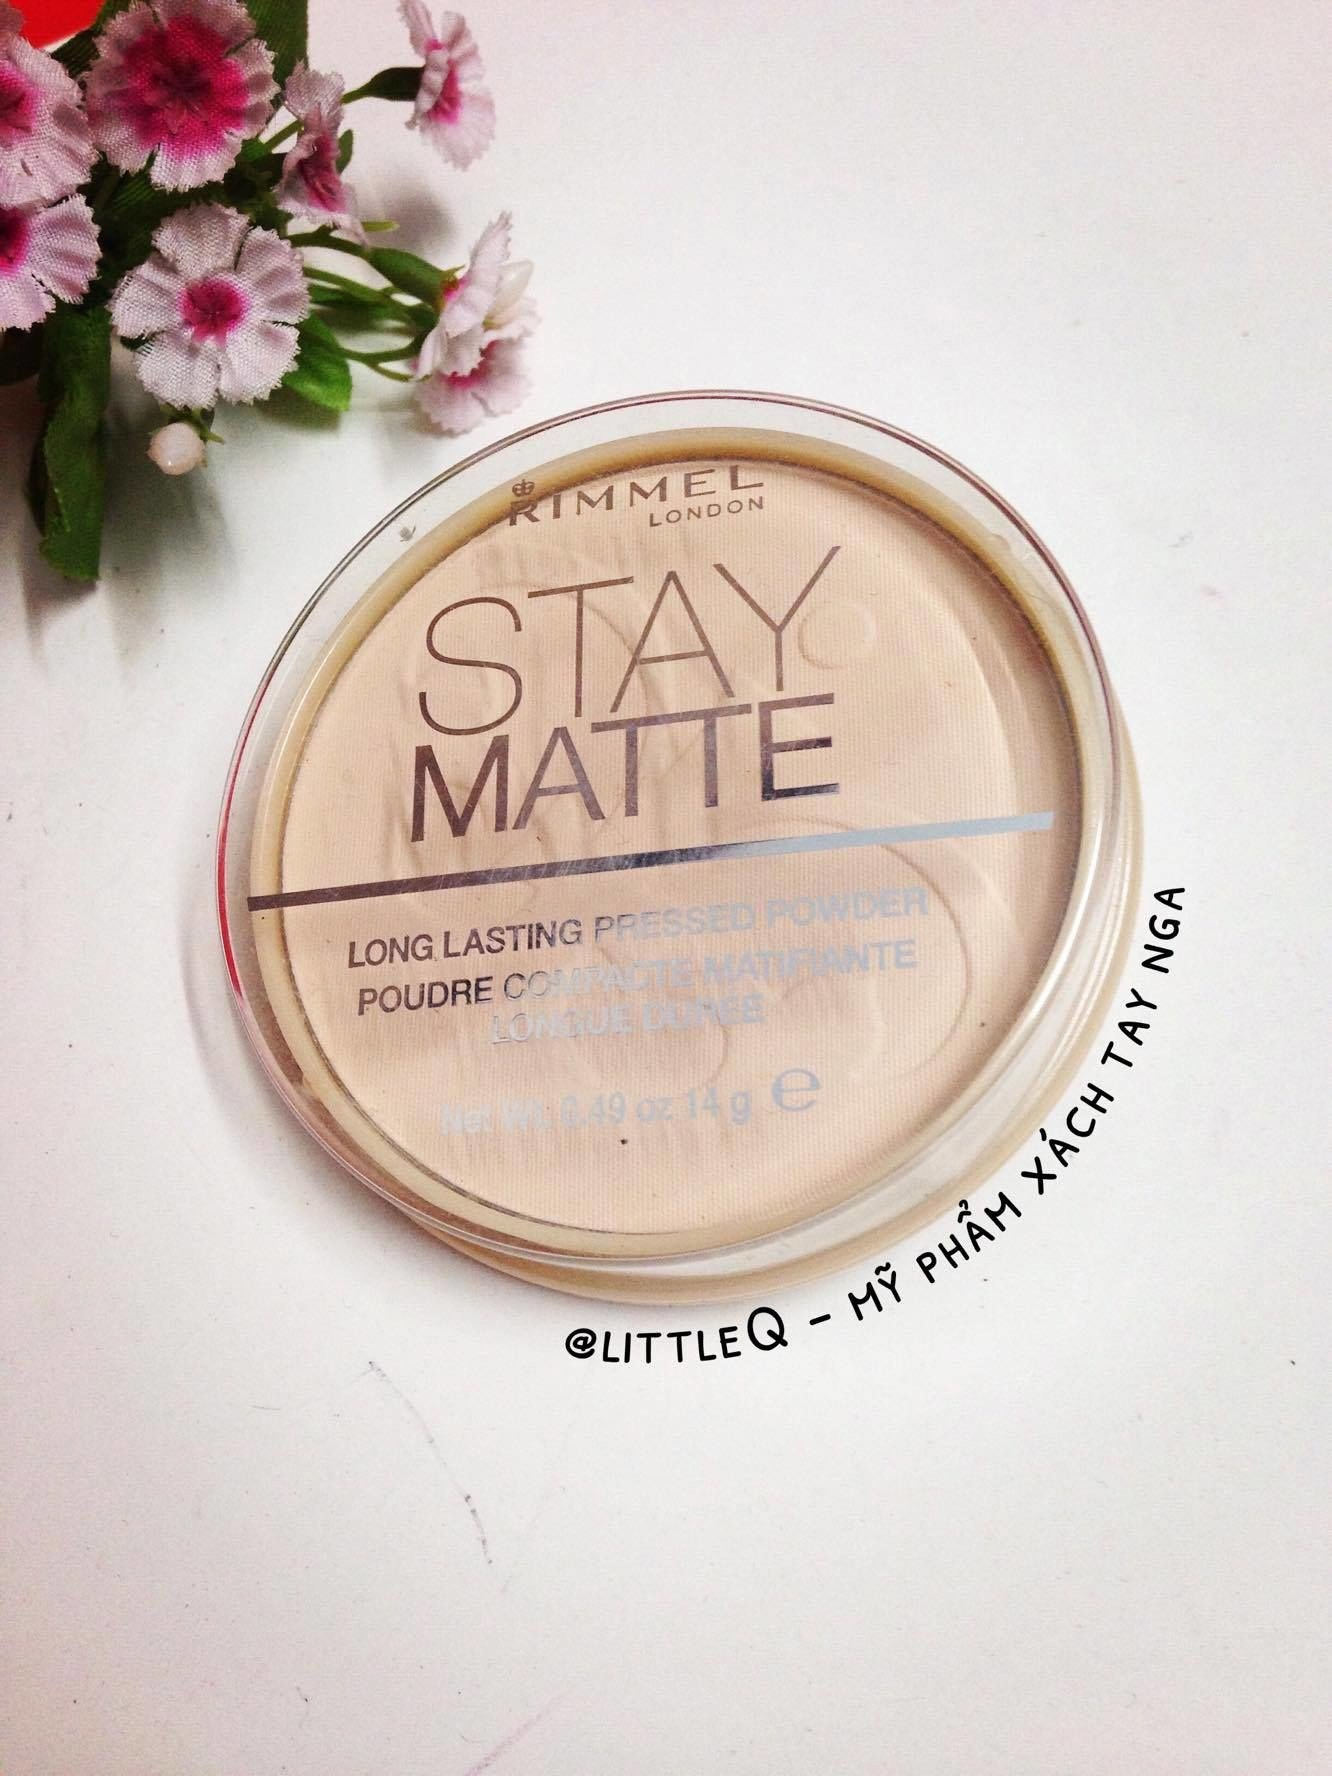 PHẤN PHỦ RIMMEL LONDON STAY MATTE